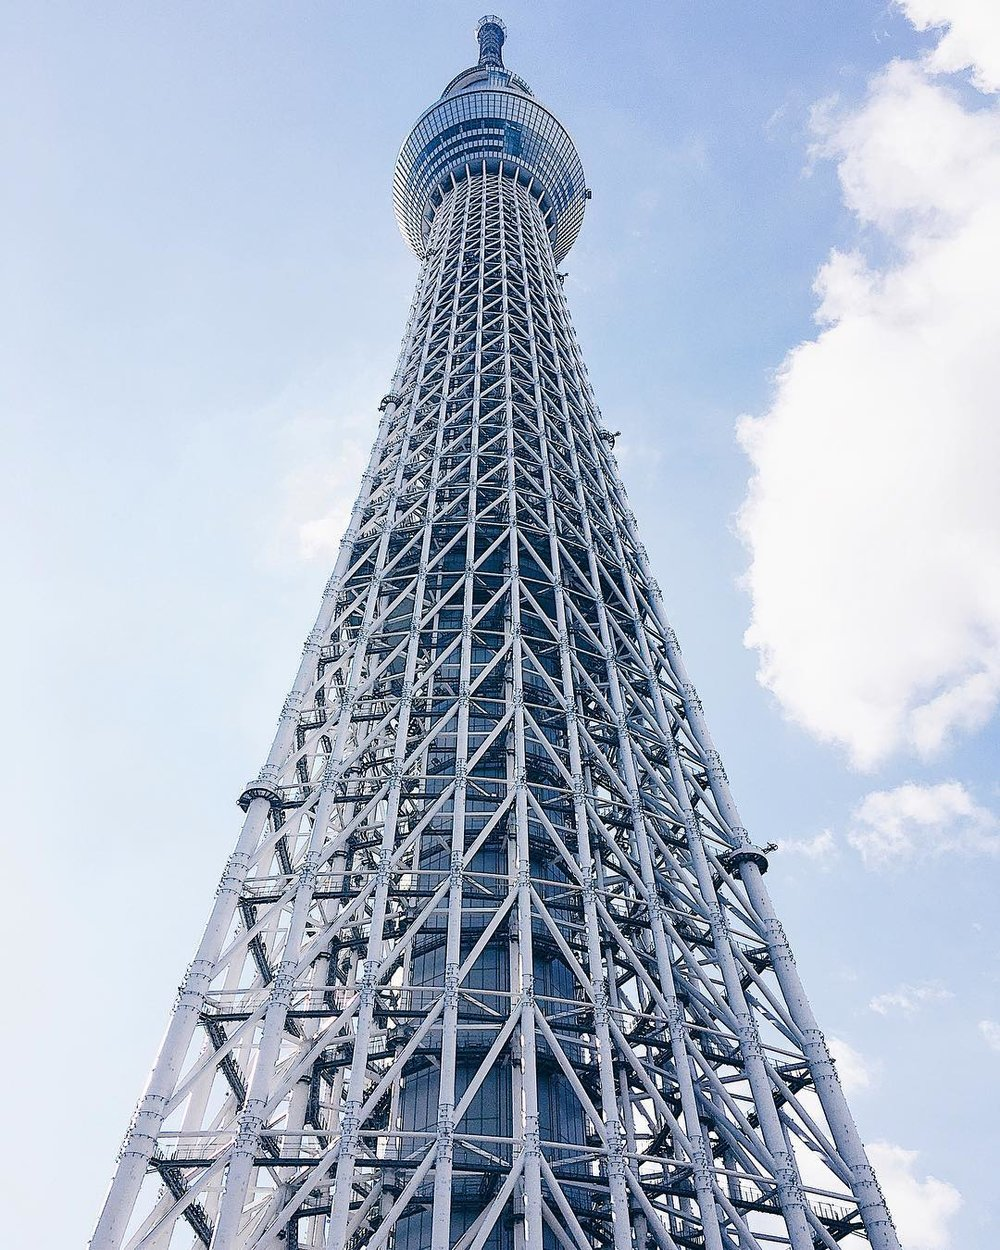 Tokyo Skytree: The World's Tallest Tower -